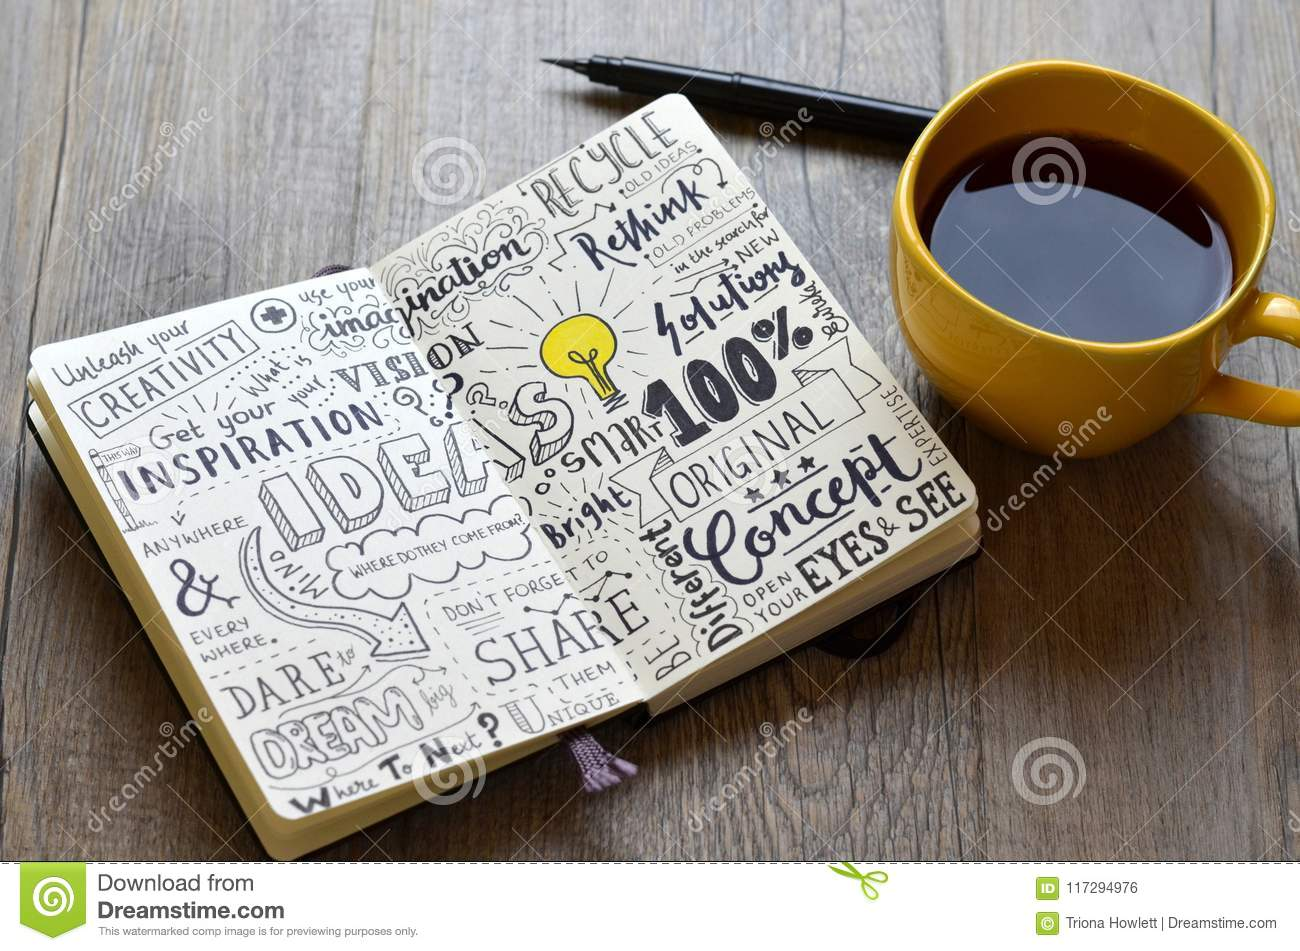 Ideas` Sketch Notes In Notepad Stock Photo , Image of coffee